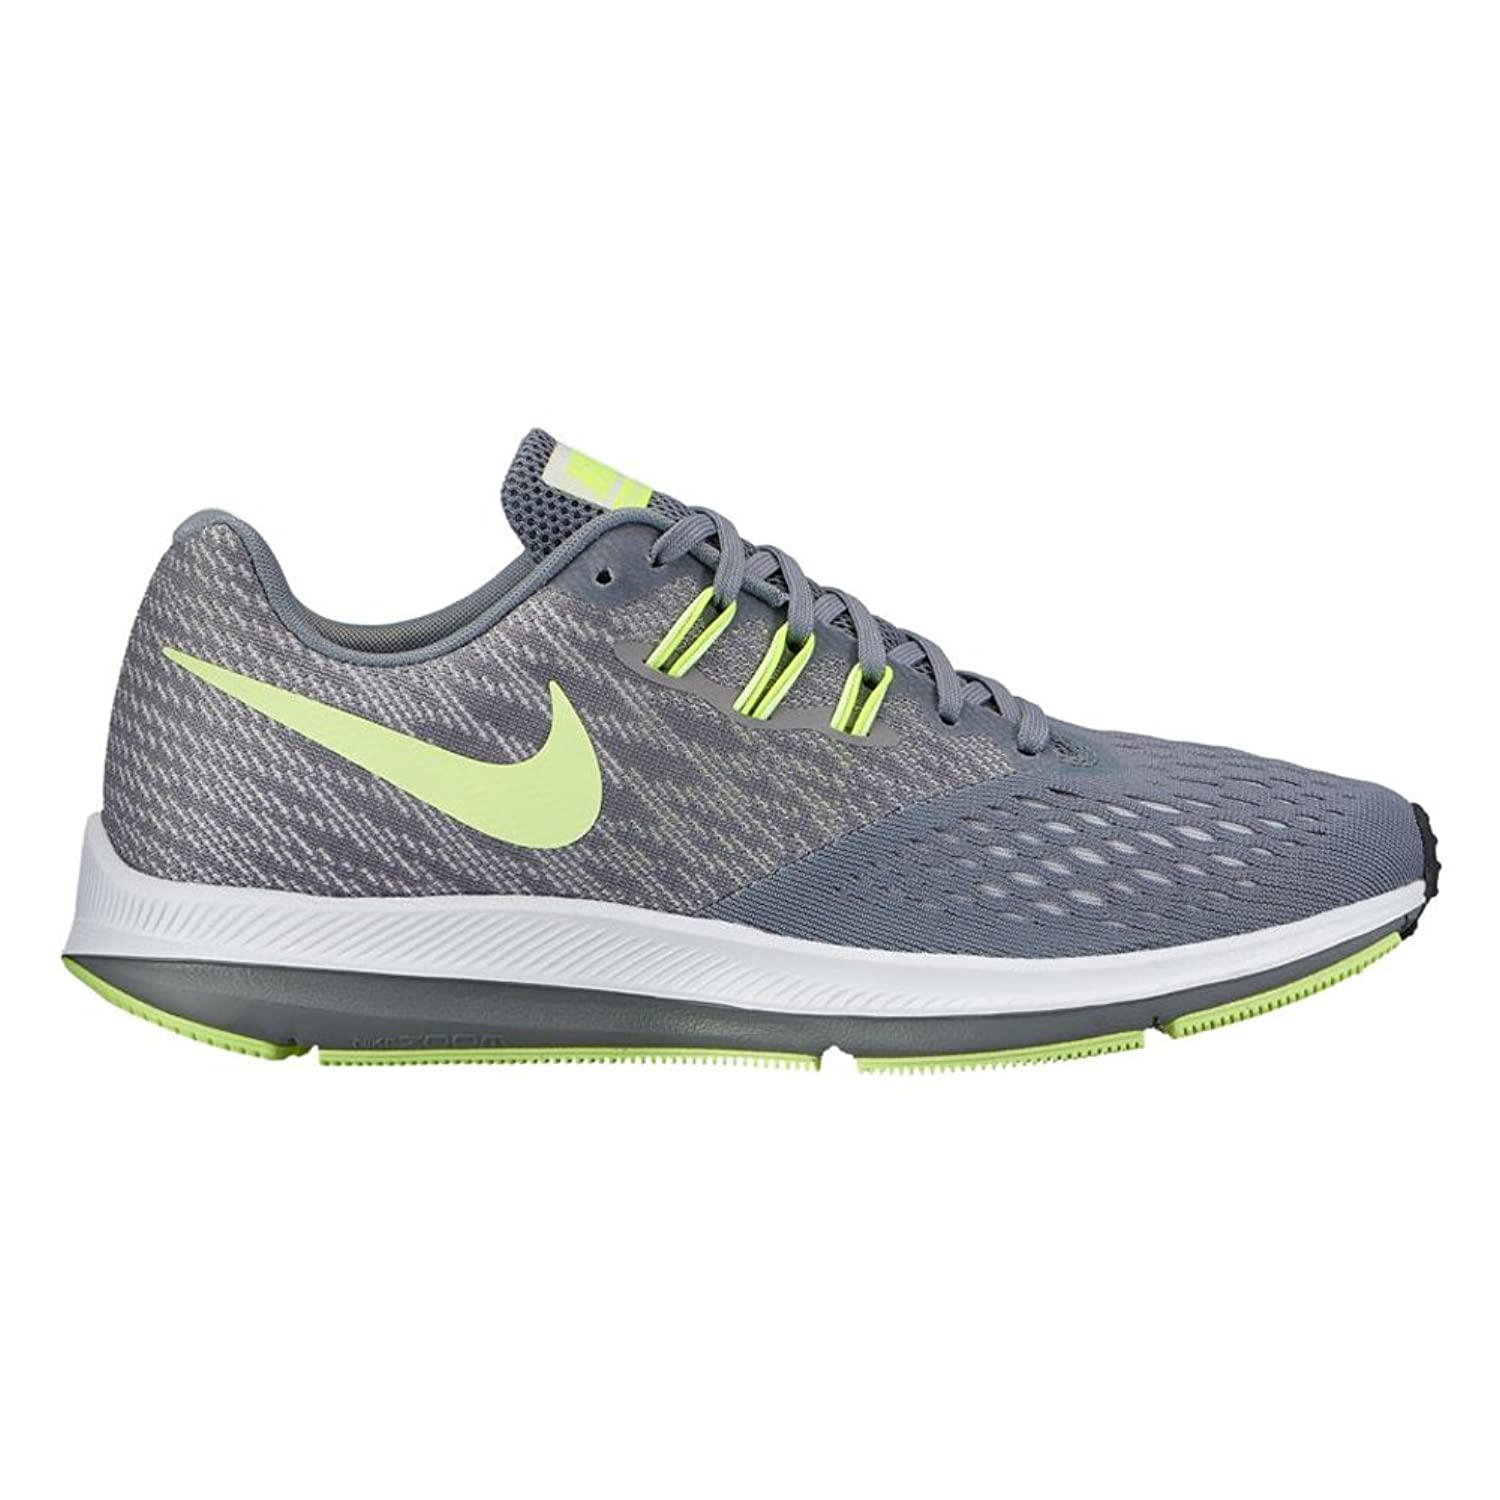 Nike Womens Air Zoom Winflo 4 Running Shoe Cool Grey/Barely Volt-Pure Platinum 9